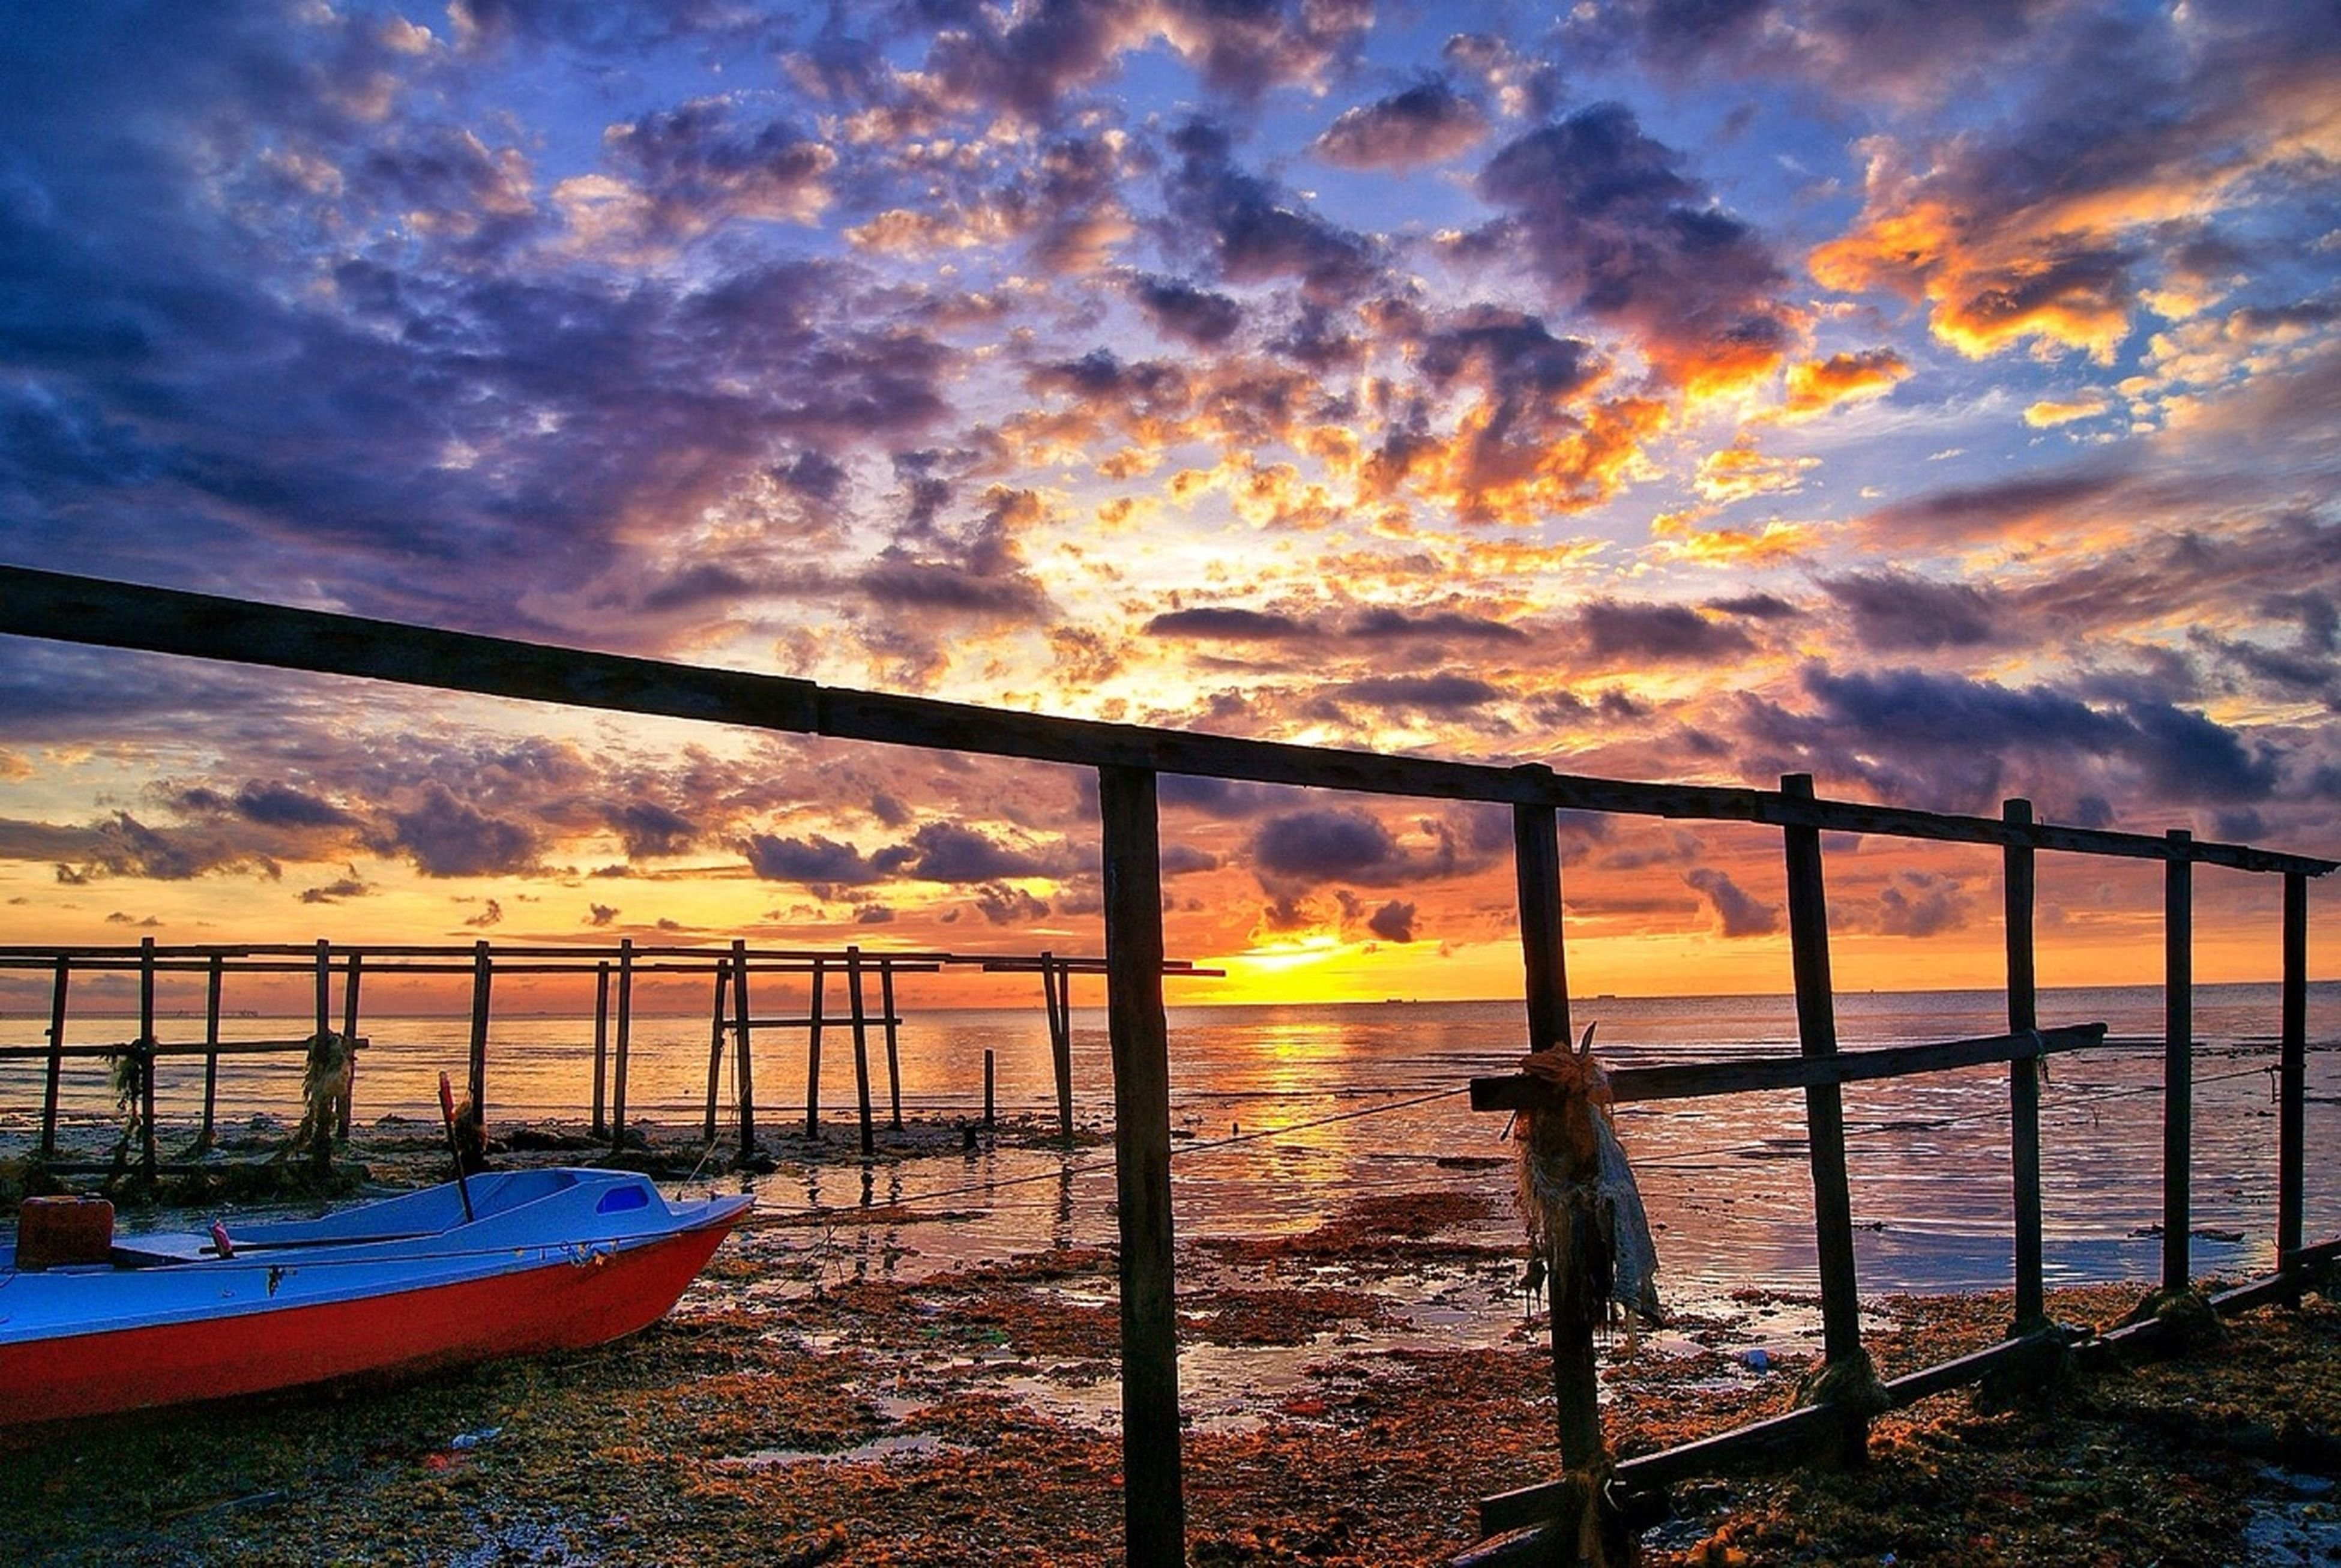 sky, sunset, water, cloud - sky, sea, railing, cloudy, scenics, beauty in nature, tranquility, nature, cloud, tranquil scene, orange color, weather, dramatic sky, horizon over water, idyllic, pier, reflection